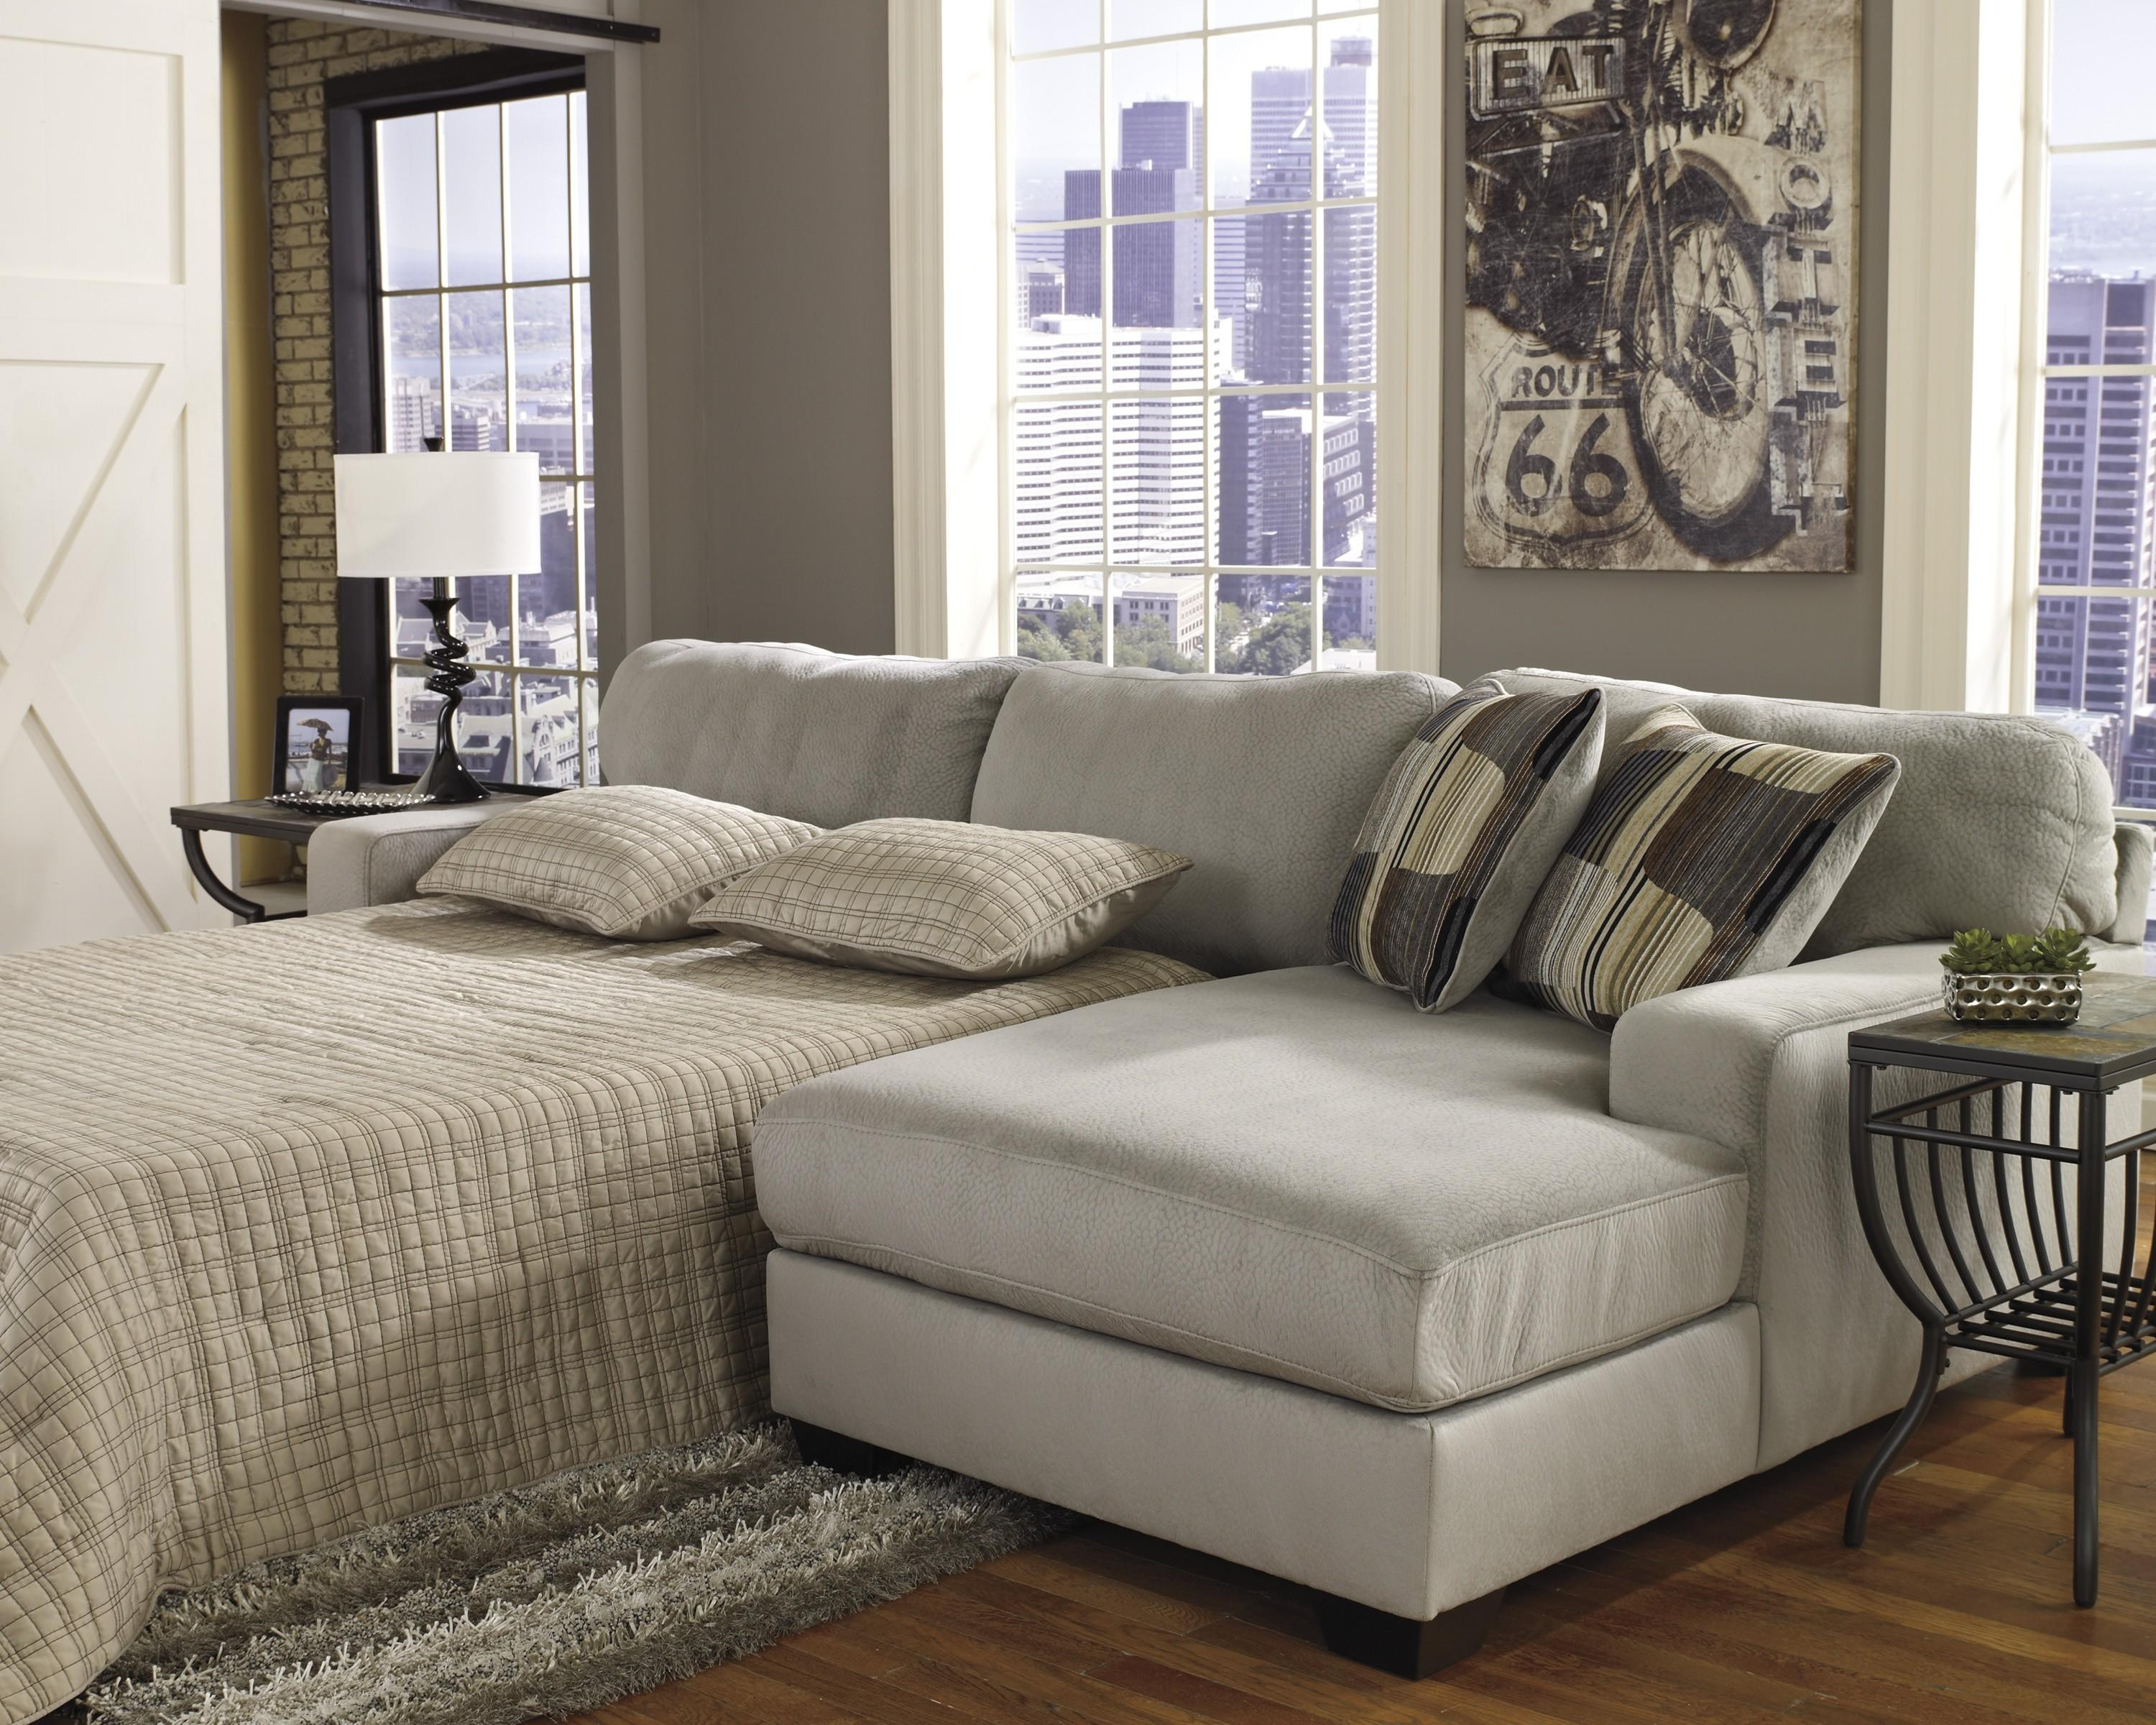 Sofas : Fabulous Sectional Furniture Cheap Sectional Sofas Sofa Inside Queen Size Sofa Bed Sheets (View 21 of 21)